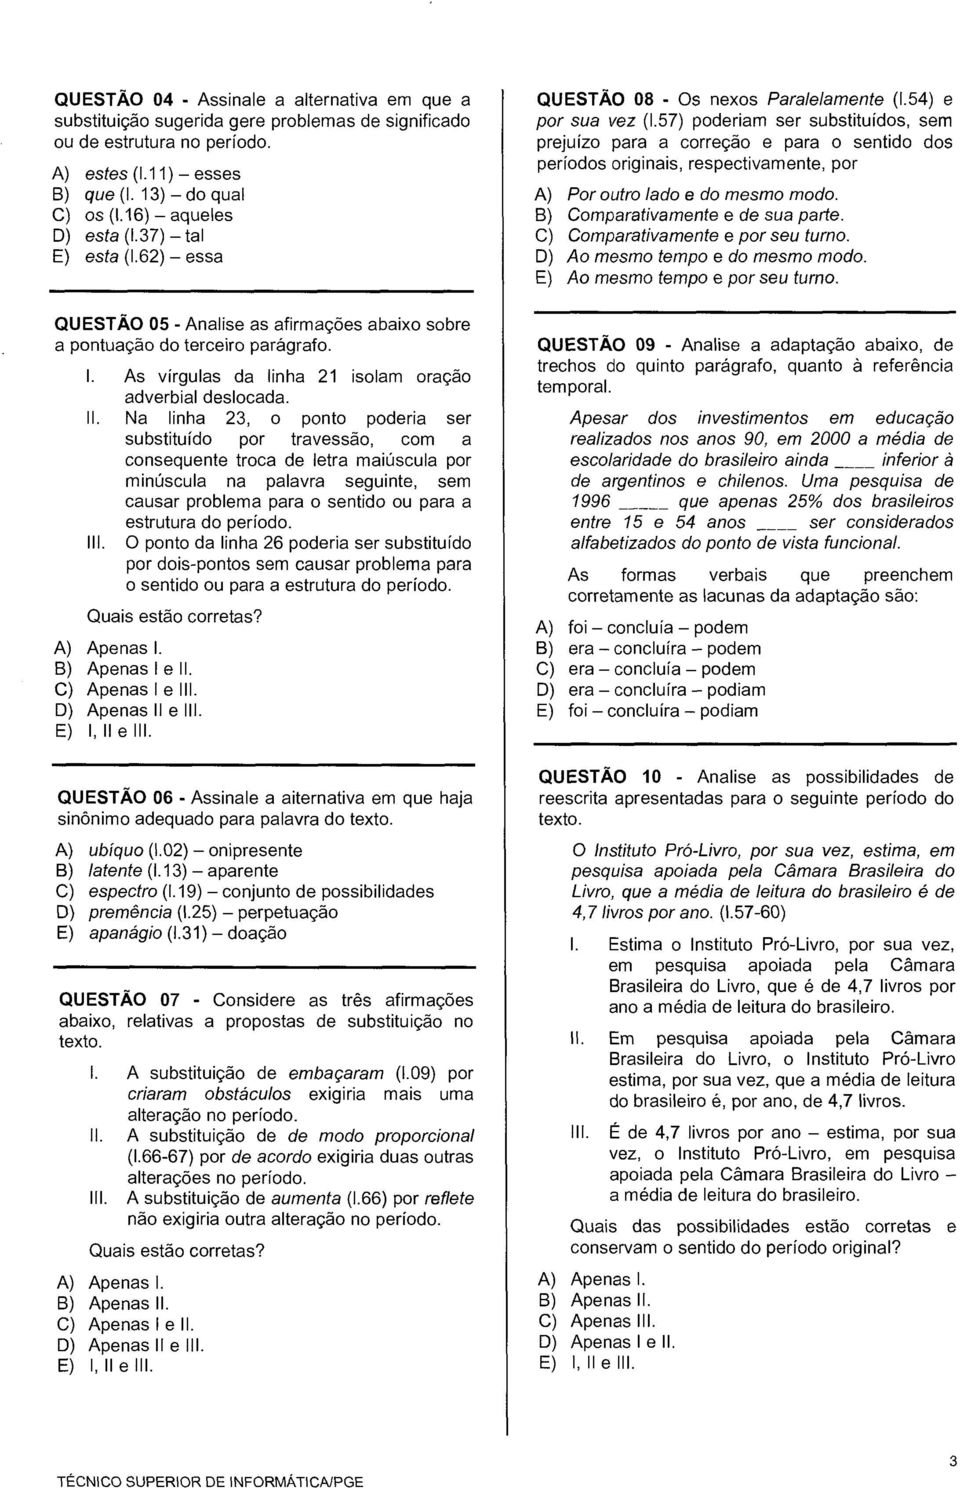 As virgulas da linha 21 isolam oragao adverbial deslocada. II.